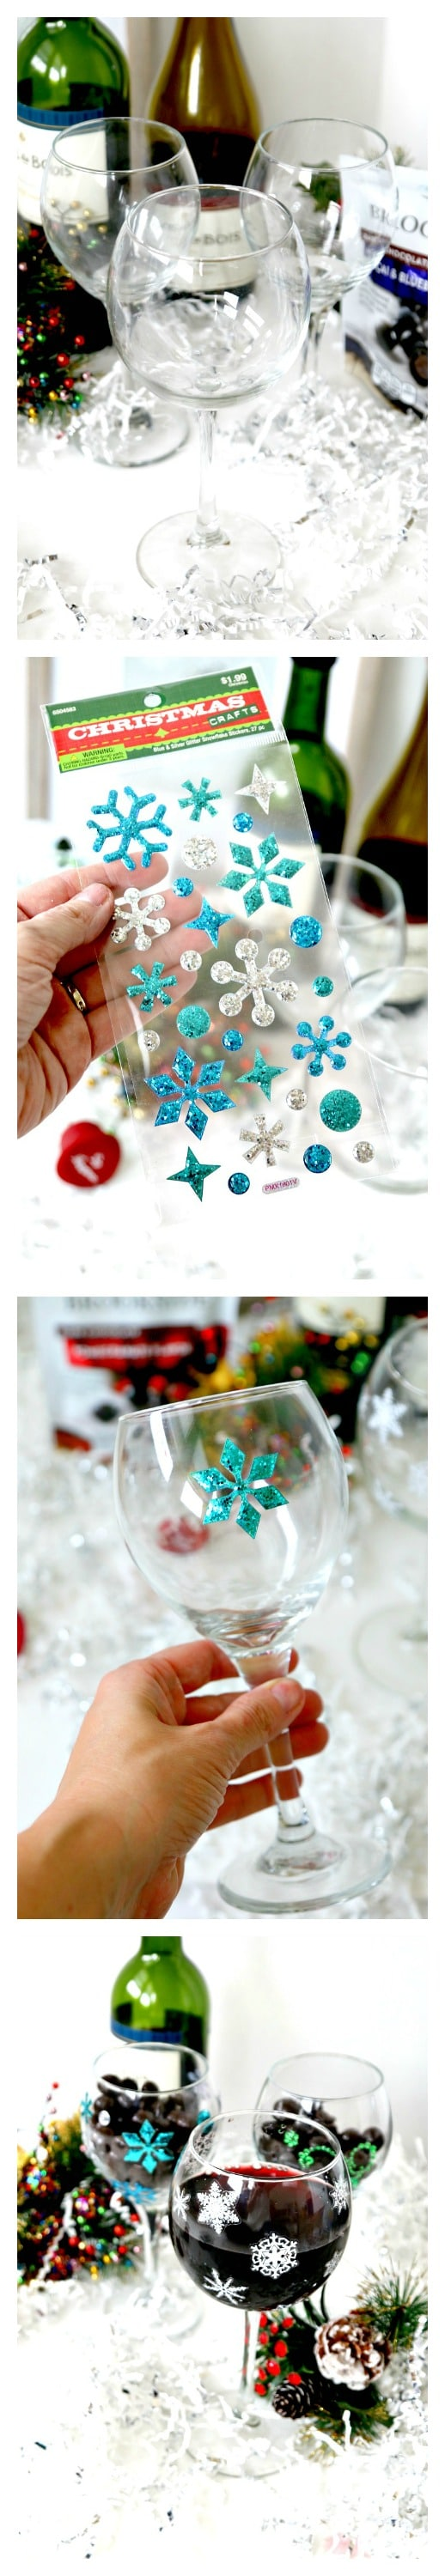 You dont need a commitment for holiday decor. Check this easy and effective hack to dress up your holiday glasses and decor for entertaining